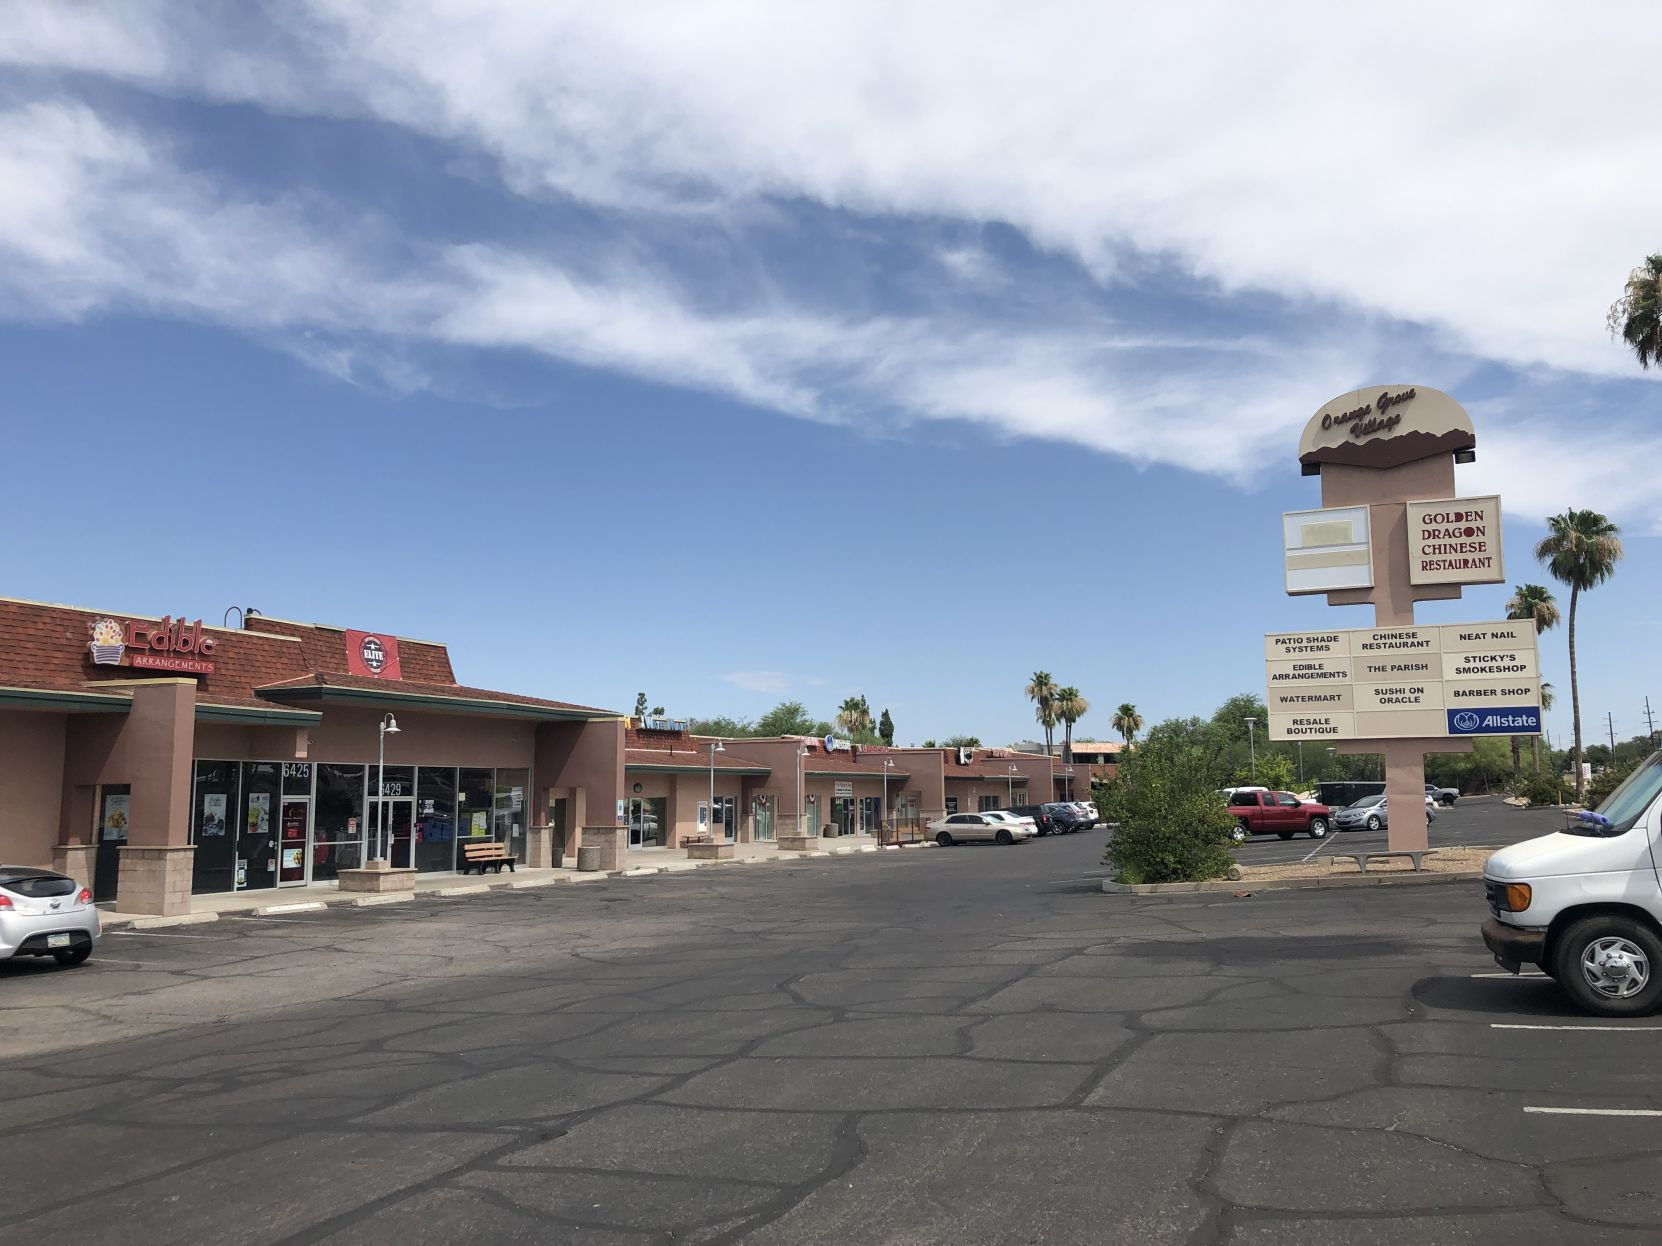 Tucson Real Estate: NW shopping center to get makeover